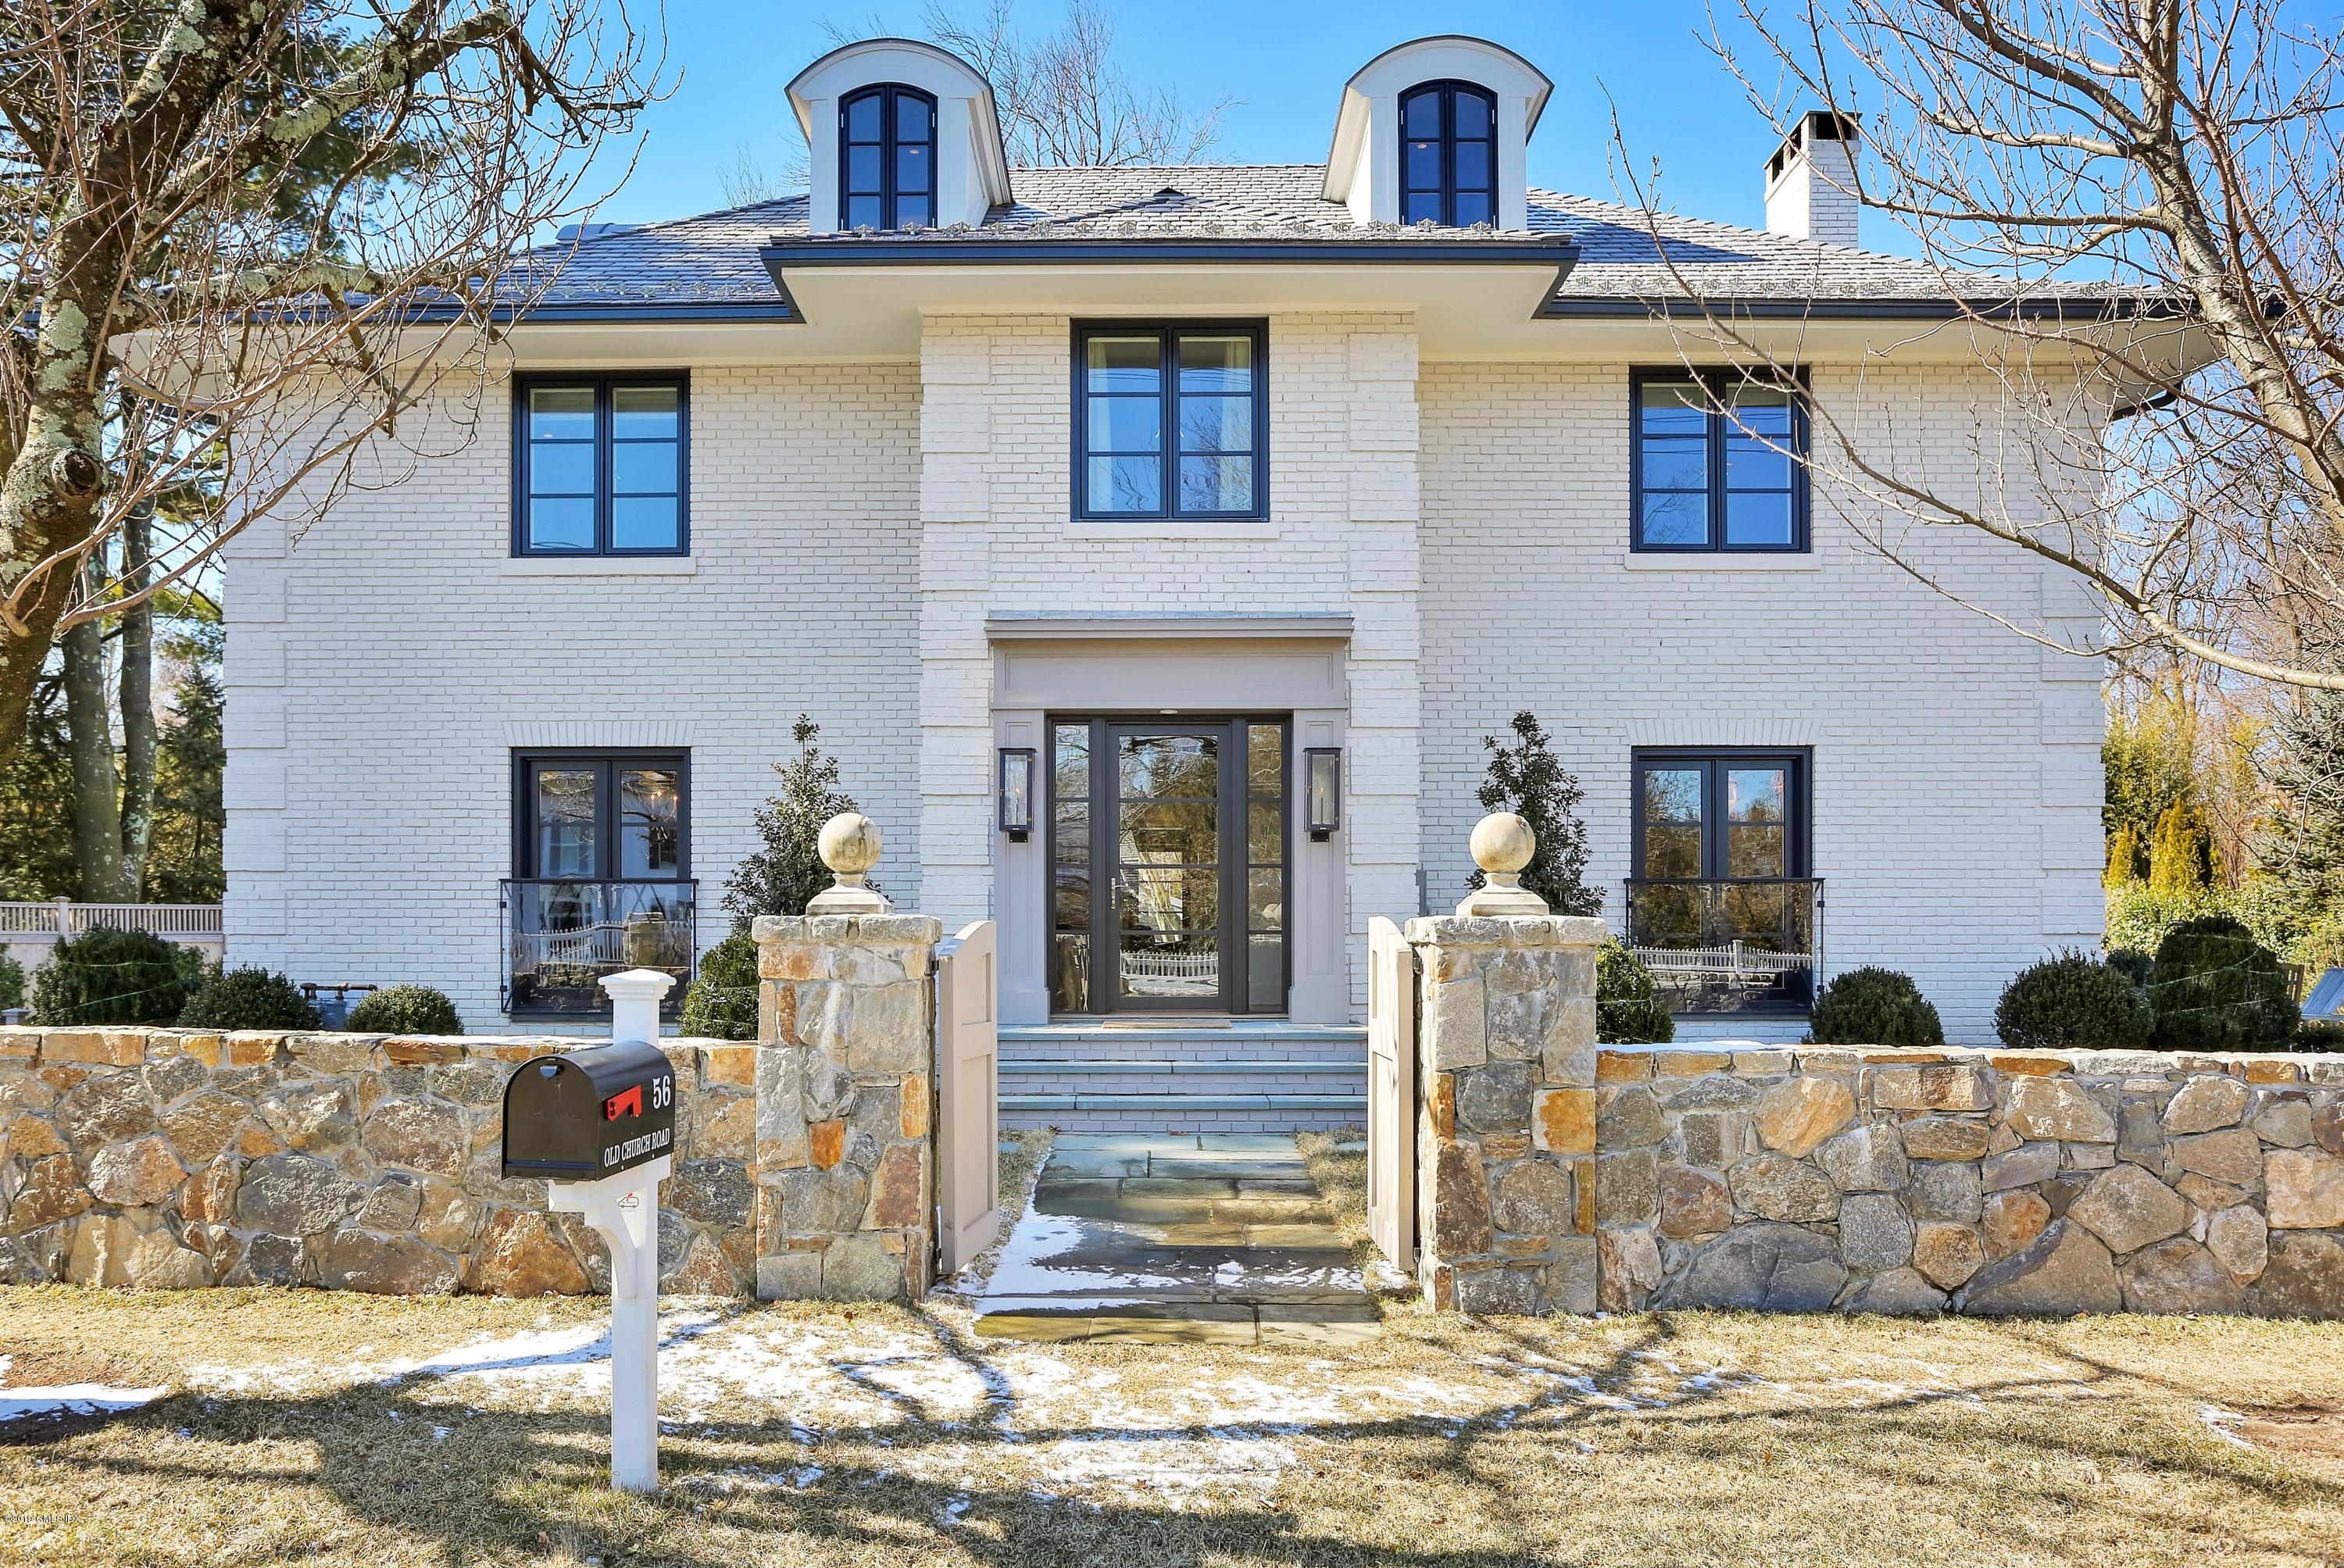 56 Old Church Road,Greenwich,Connecticut 06830,5 Bedrooms Bedrooms,5 BathroomsBathrooms,Single family,Old Church,105851